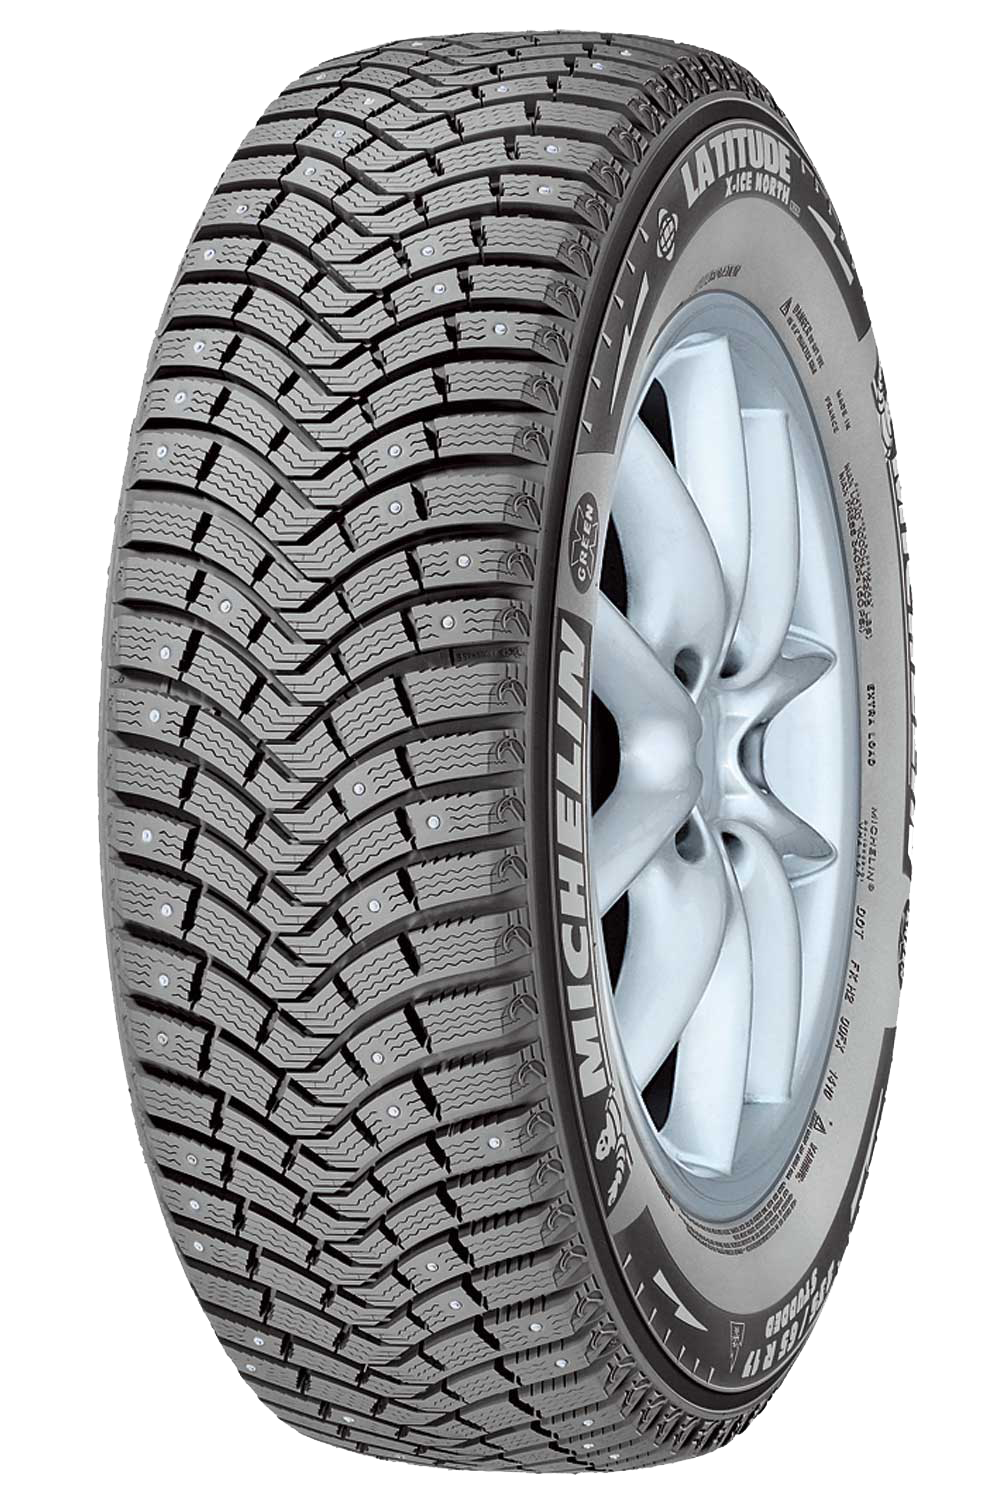 Зимняя шипованная шина Michelin Latitude X-Ice North XIN2 plus 215/70 R16 100T